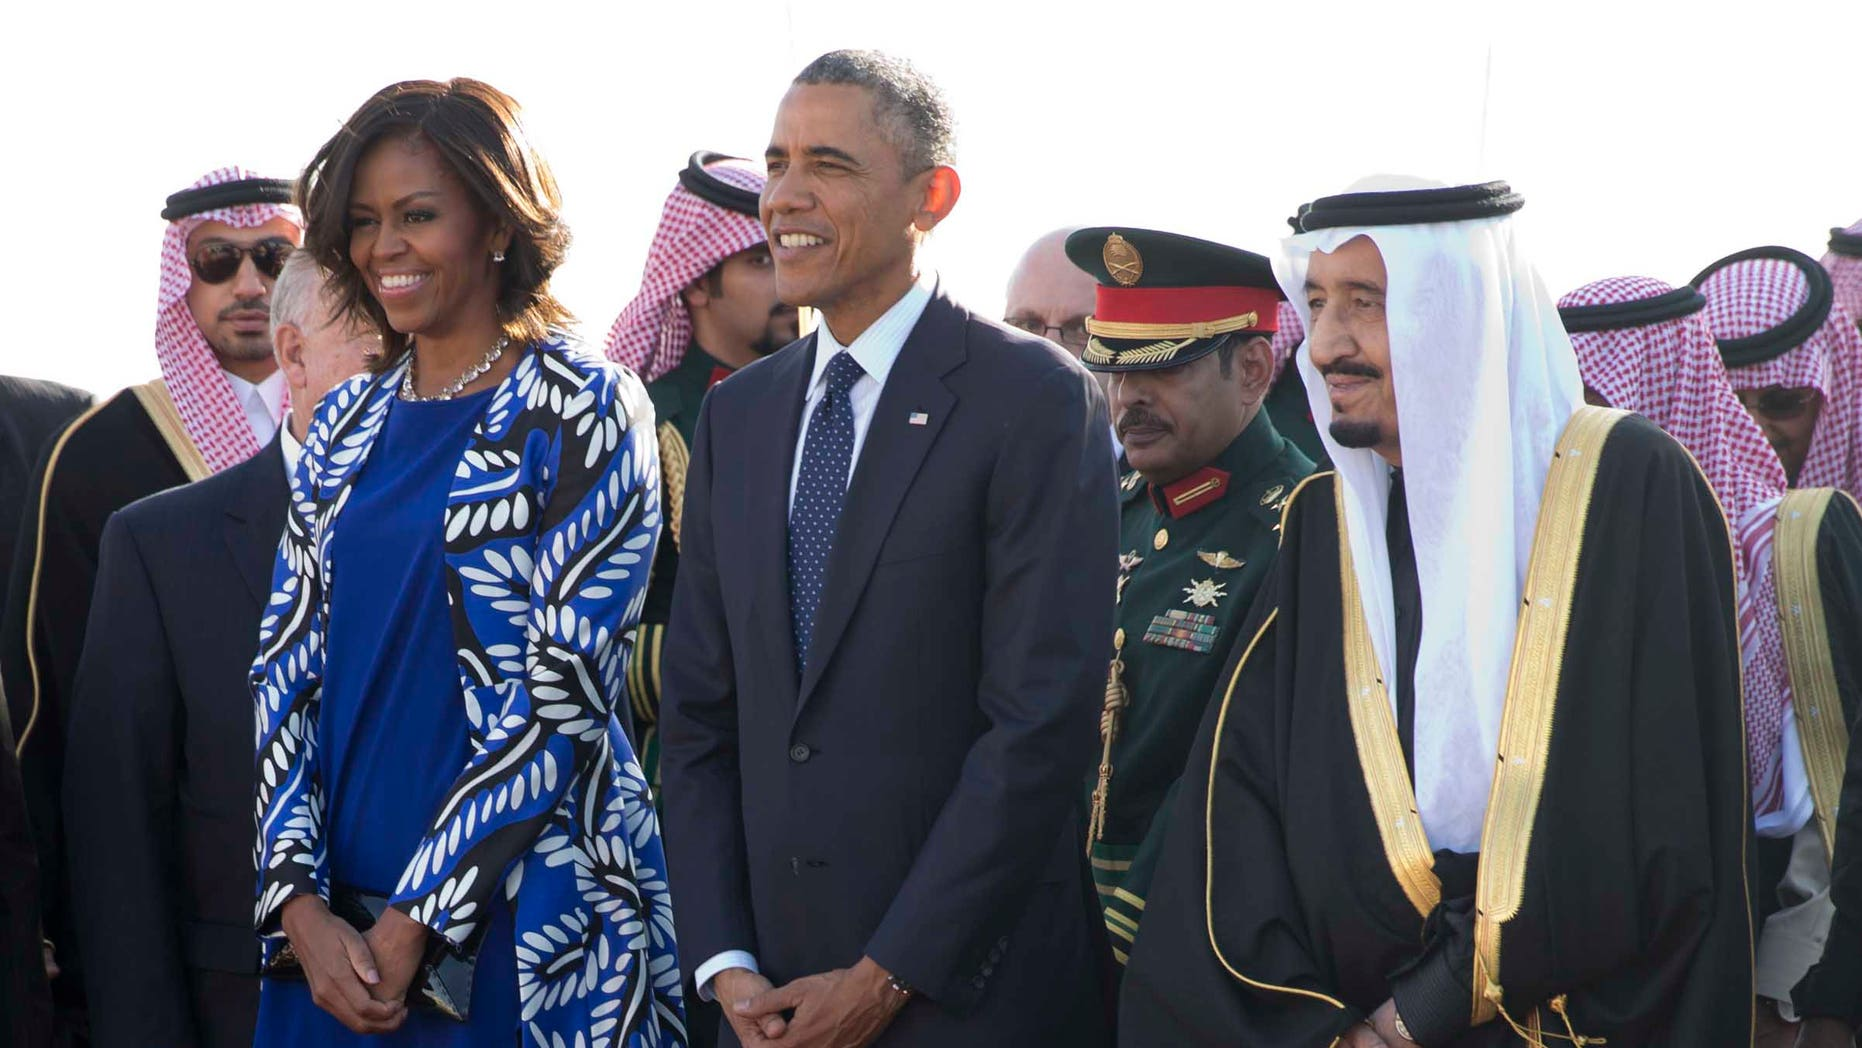 President Barack Obama and first lady Michelle Obama stand with new Saudi King Salman bin Abdul Aziz they arrive on Air Force One at King Khalid International Airport, in Riyadh, Saudi Arabia, Tuesday, Jan. 27, 2015. (AP Photo/Carolyn Kaster)